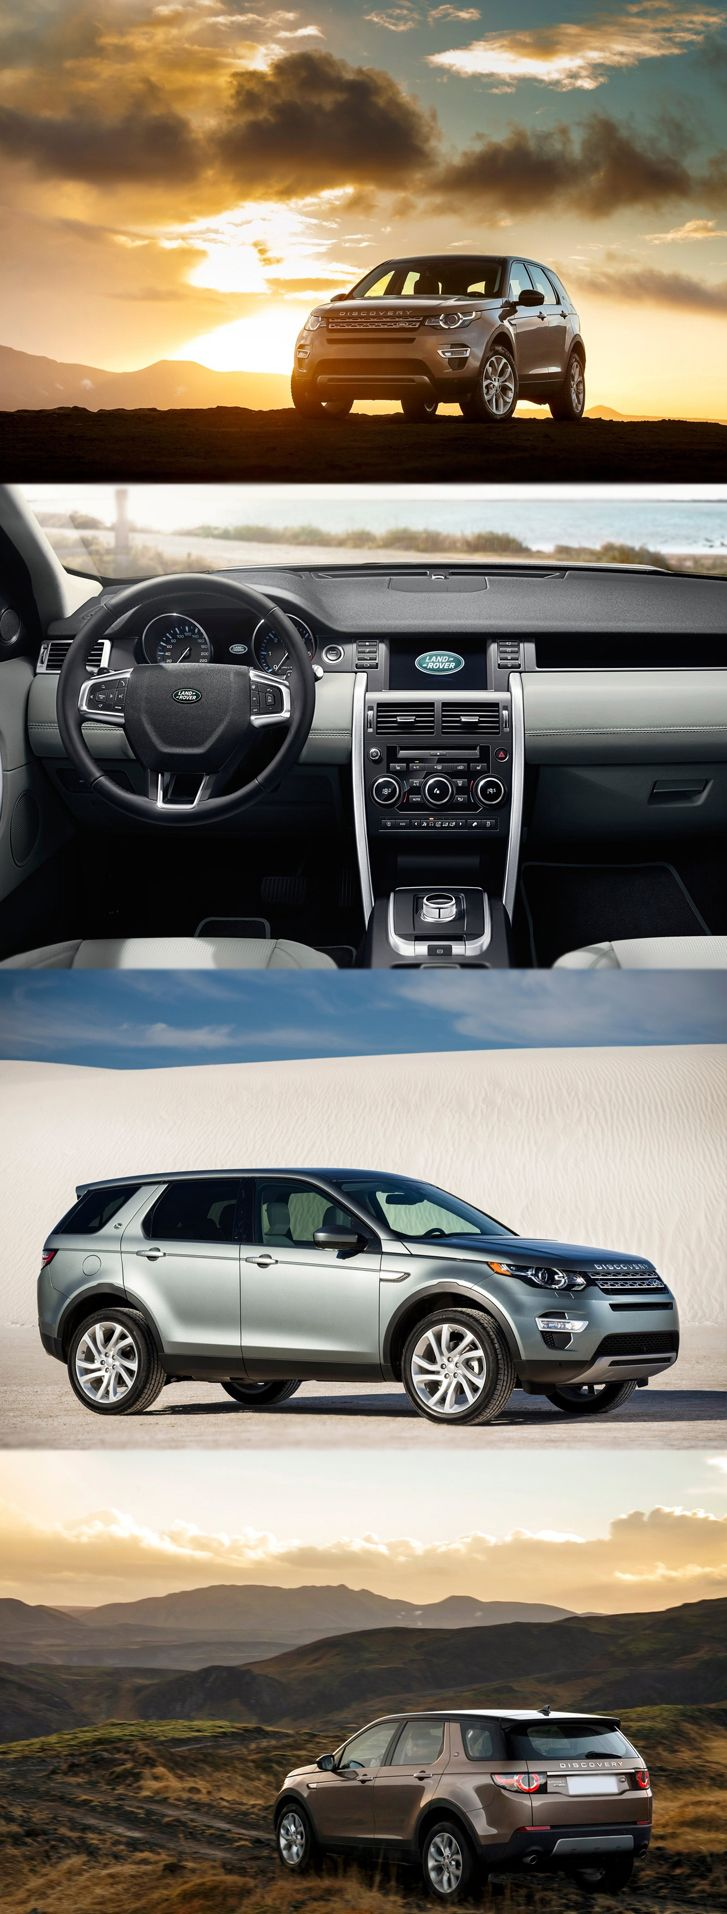 Land rover discovery sports gearbox emits high performance and speedy sprints